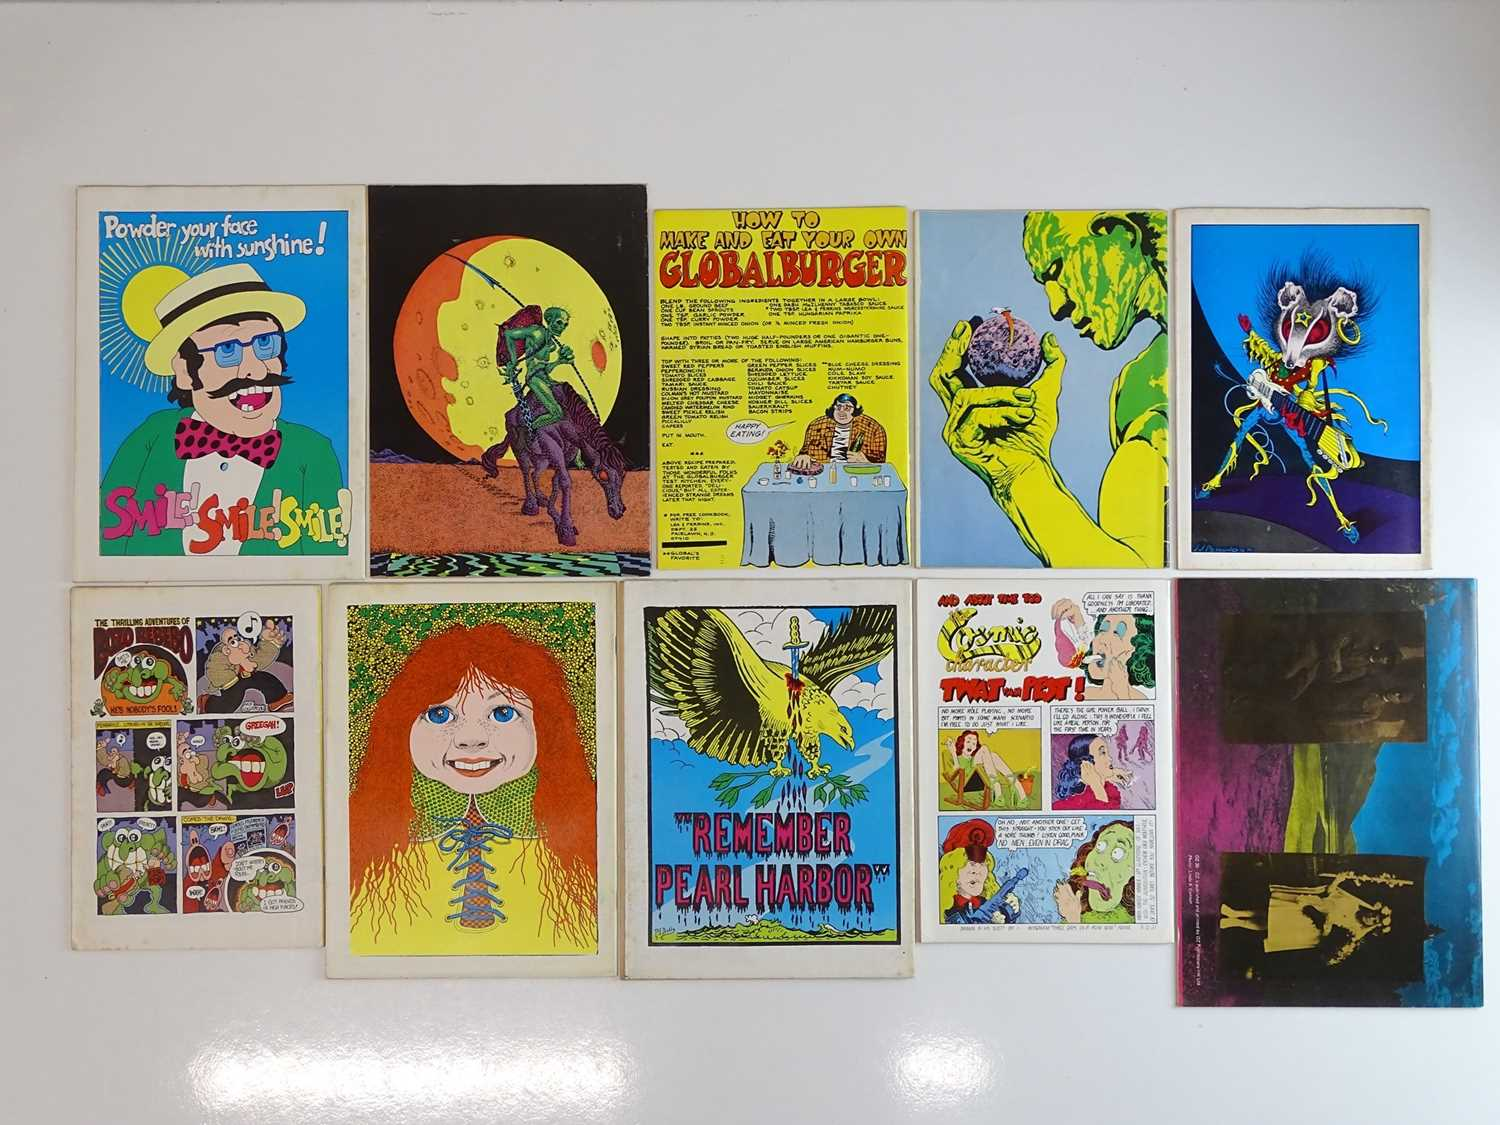 COZMIC COMIC LOT - (10 in Lot) - (1972/75) Selection of Adults only issues - Really are a snapshot - Image 2 of 2